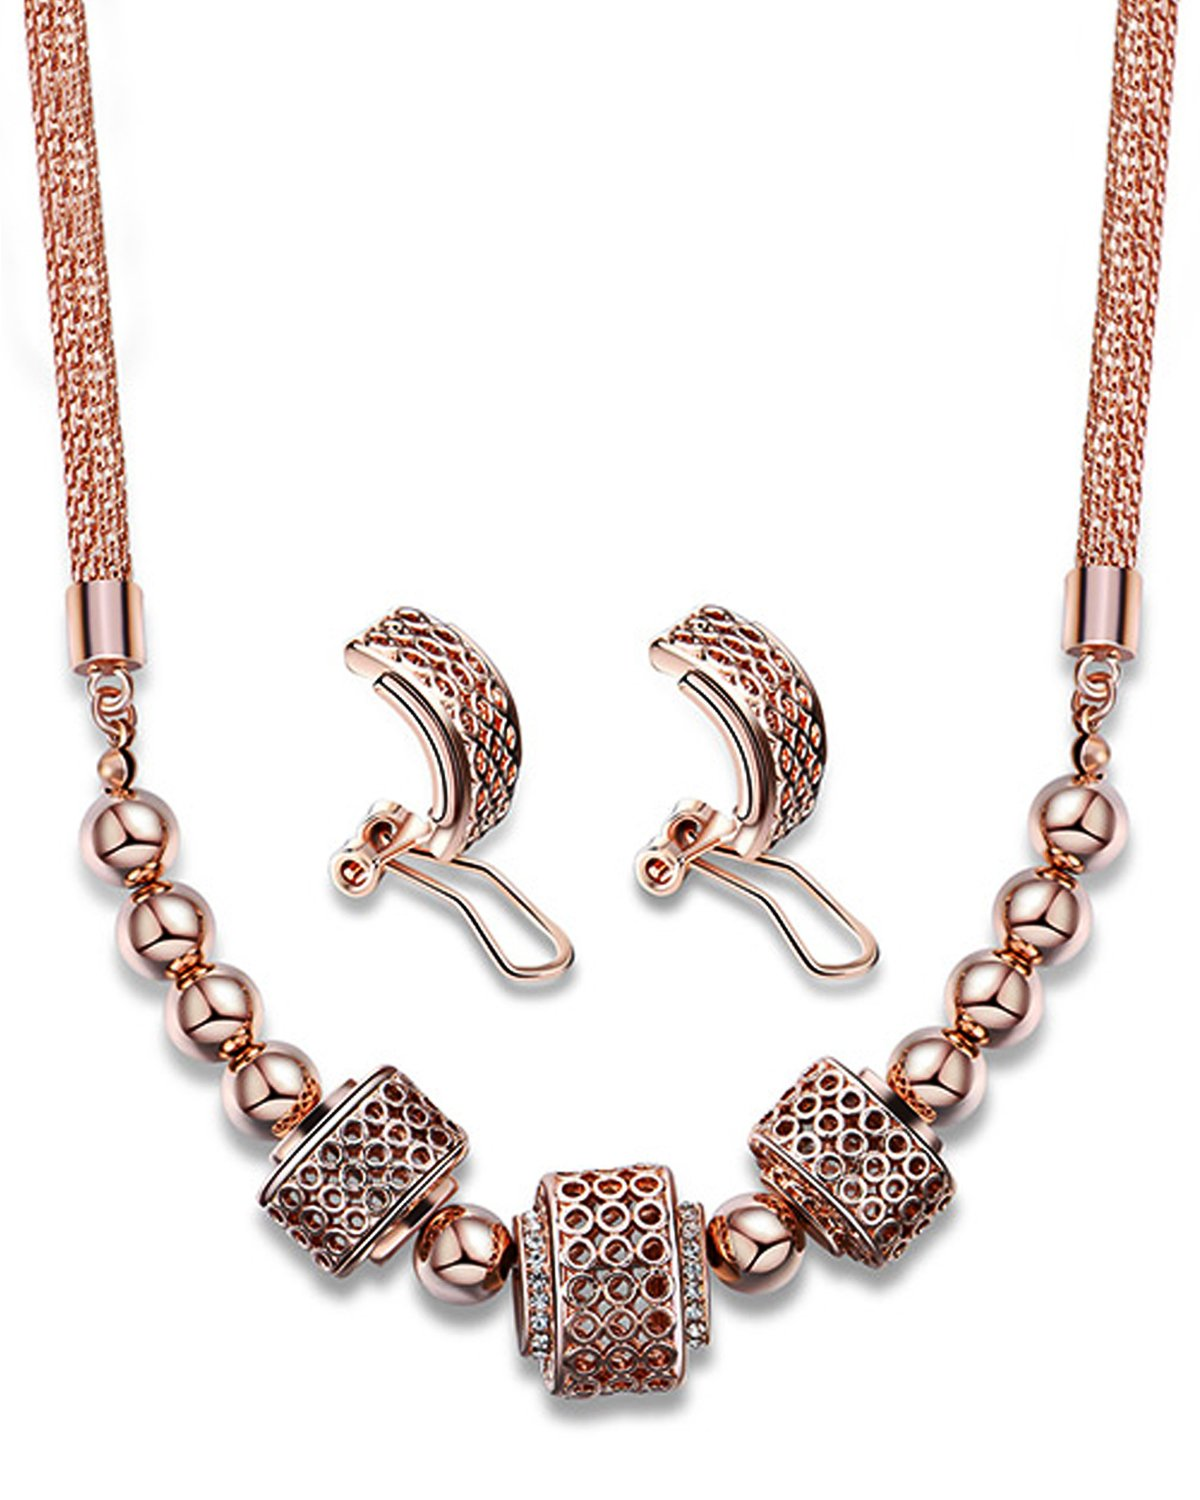 Young & Forever Elite Mesmerizing Prom Wedding Overgild Gold Plated Jewelry Sets Necklace Earrings Set for Women / Girls stylish party wear N669